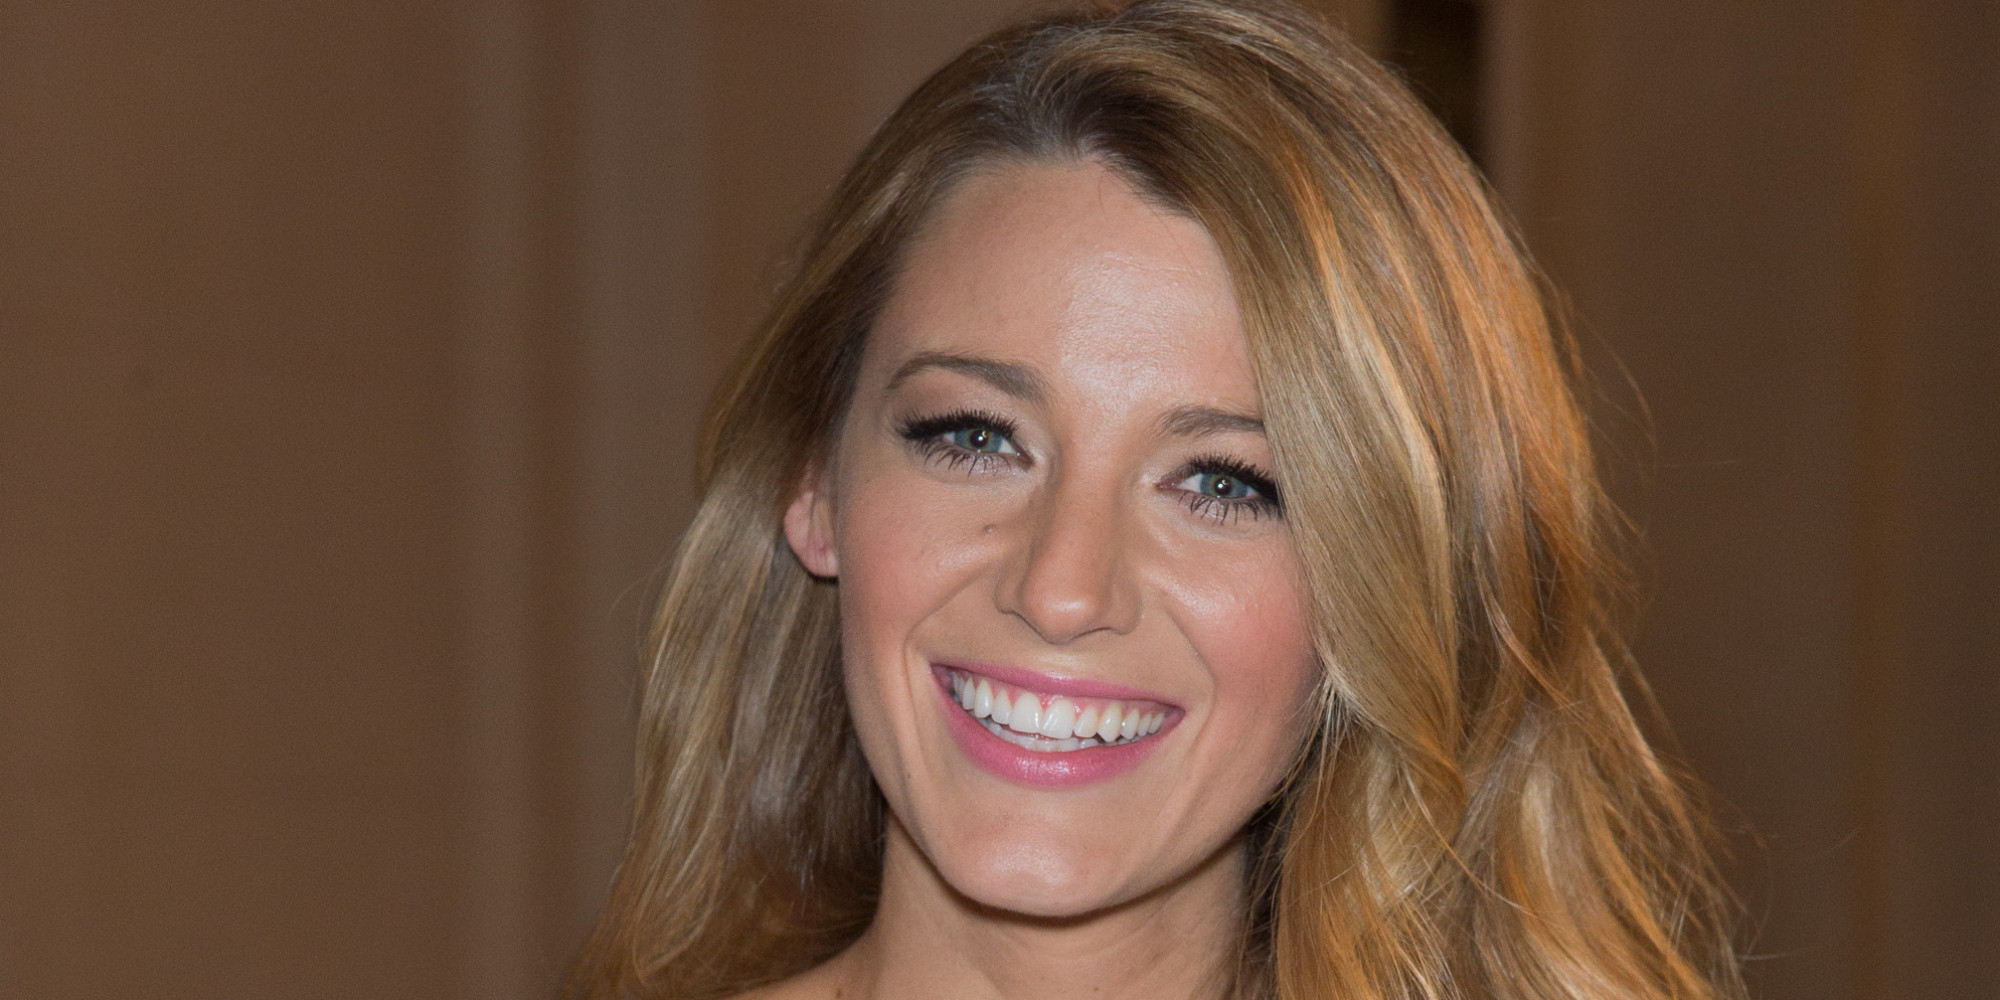 Blake Lively Was Awesome, Even in High School | HuffPost Blake Lively Facebook